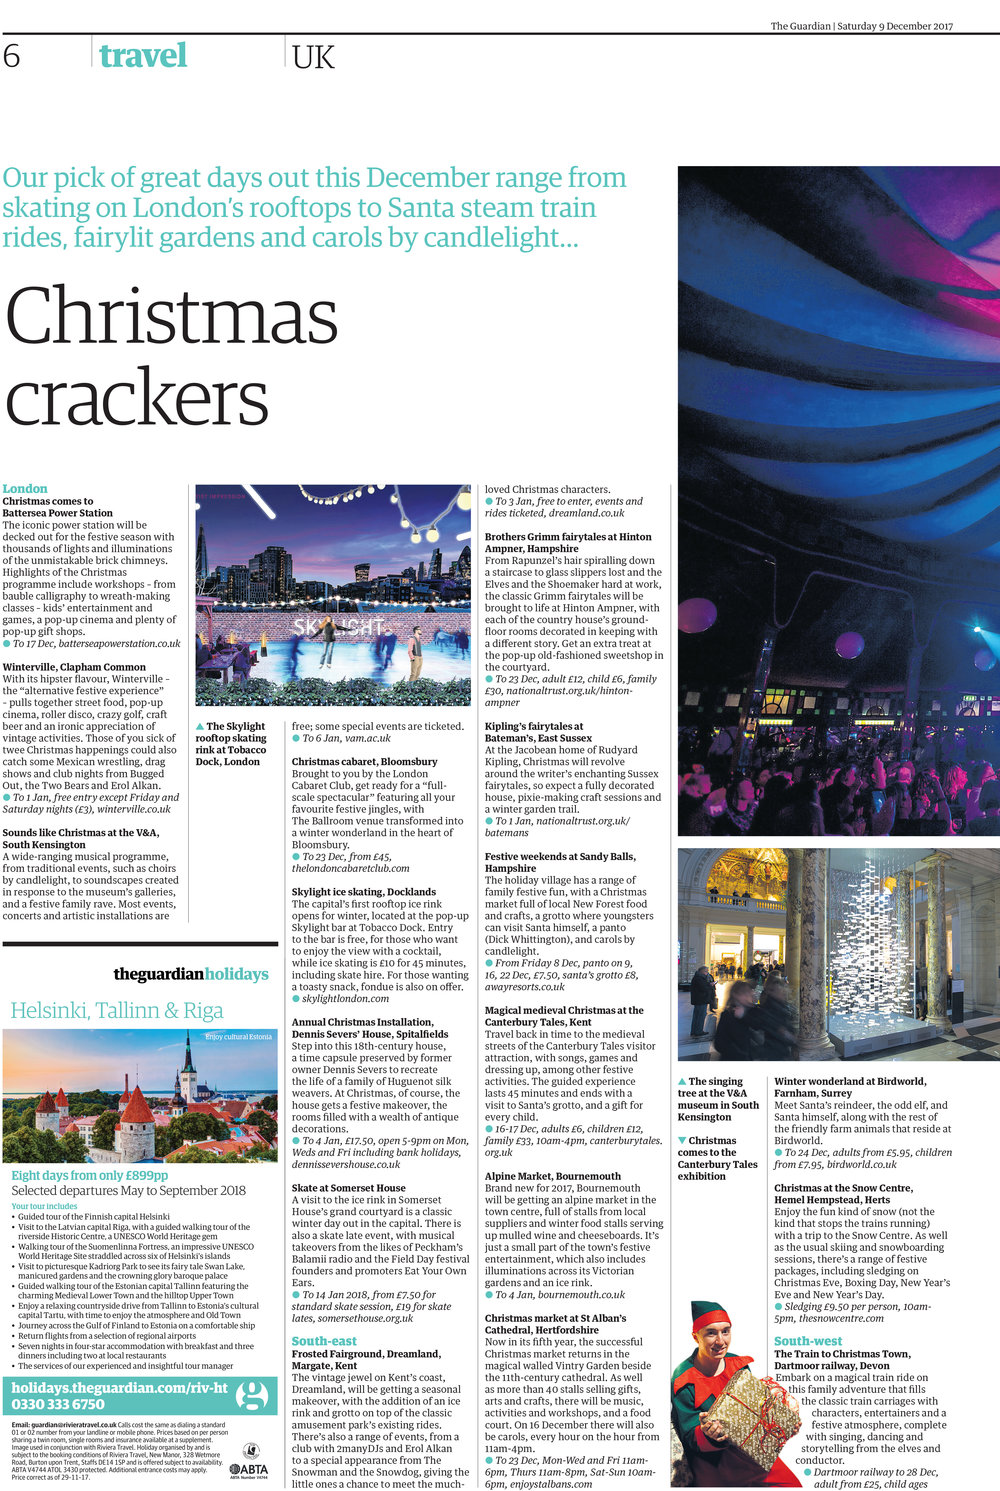 The Guardian Skylight December 9th Feature 3.jpg